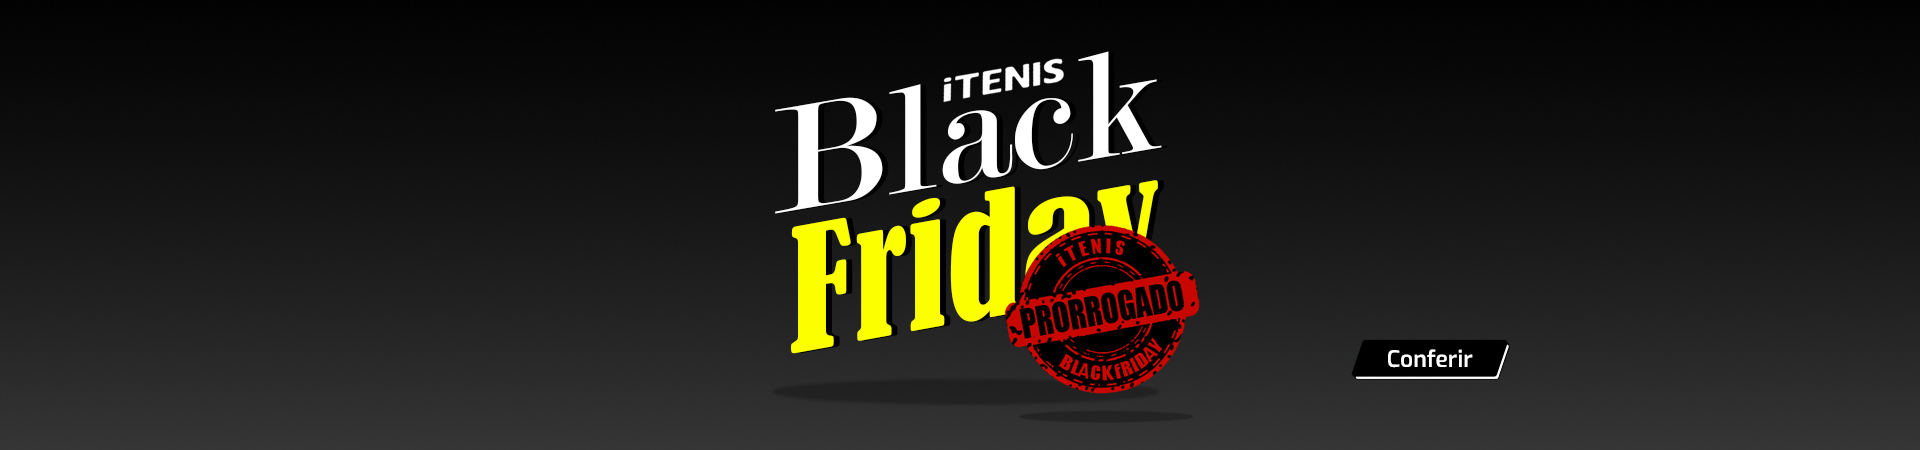 Black Friday Prorrogado